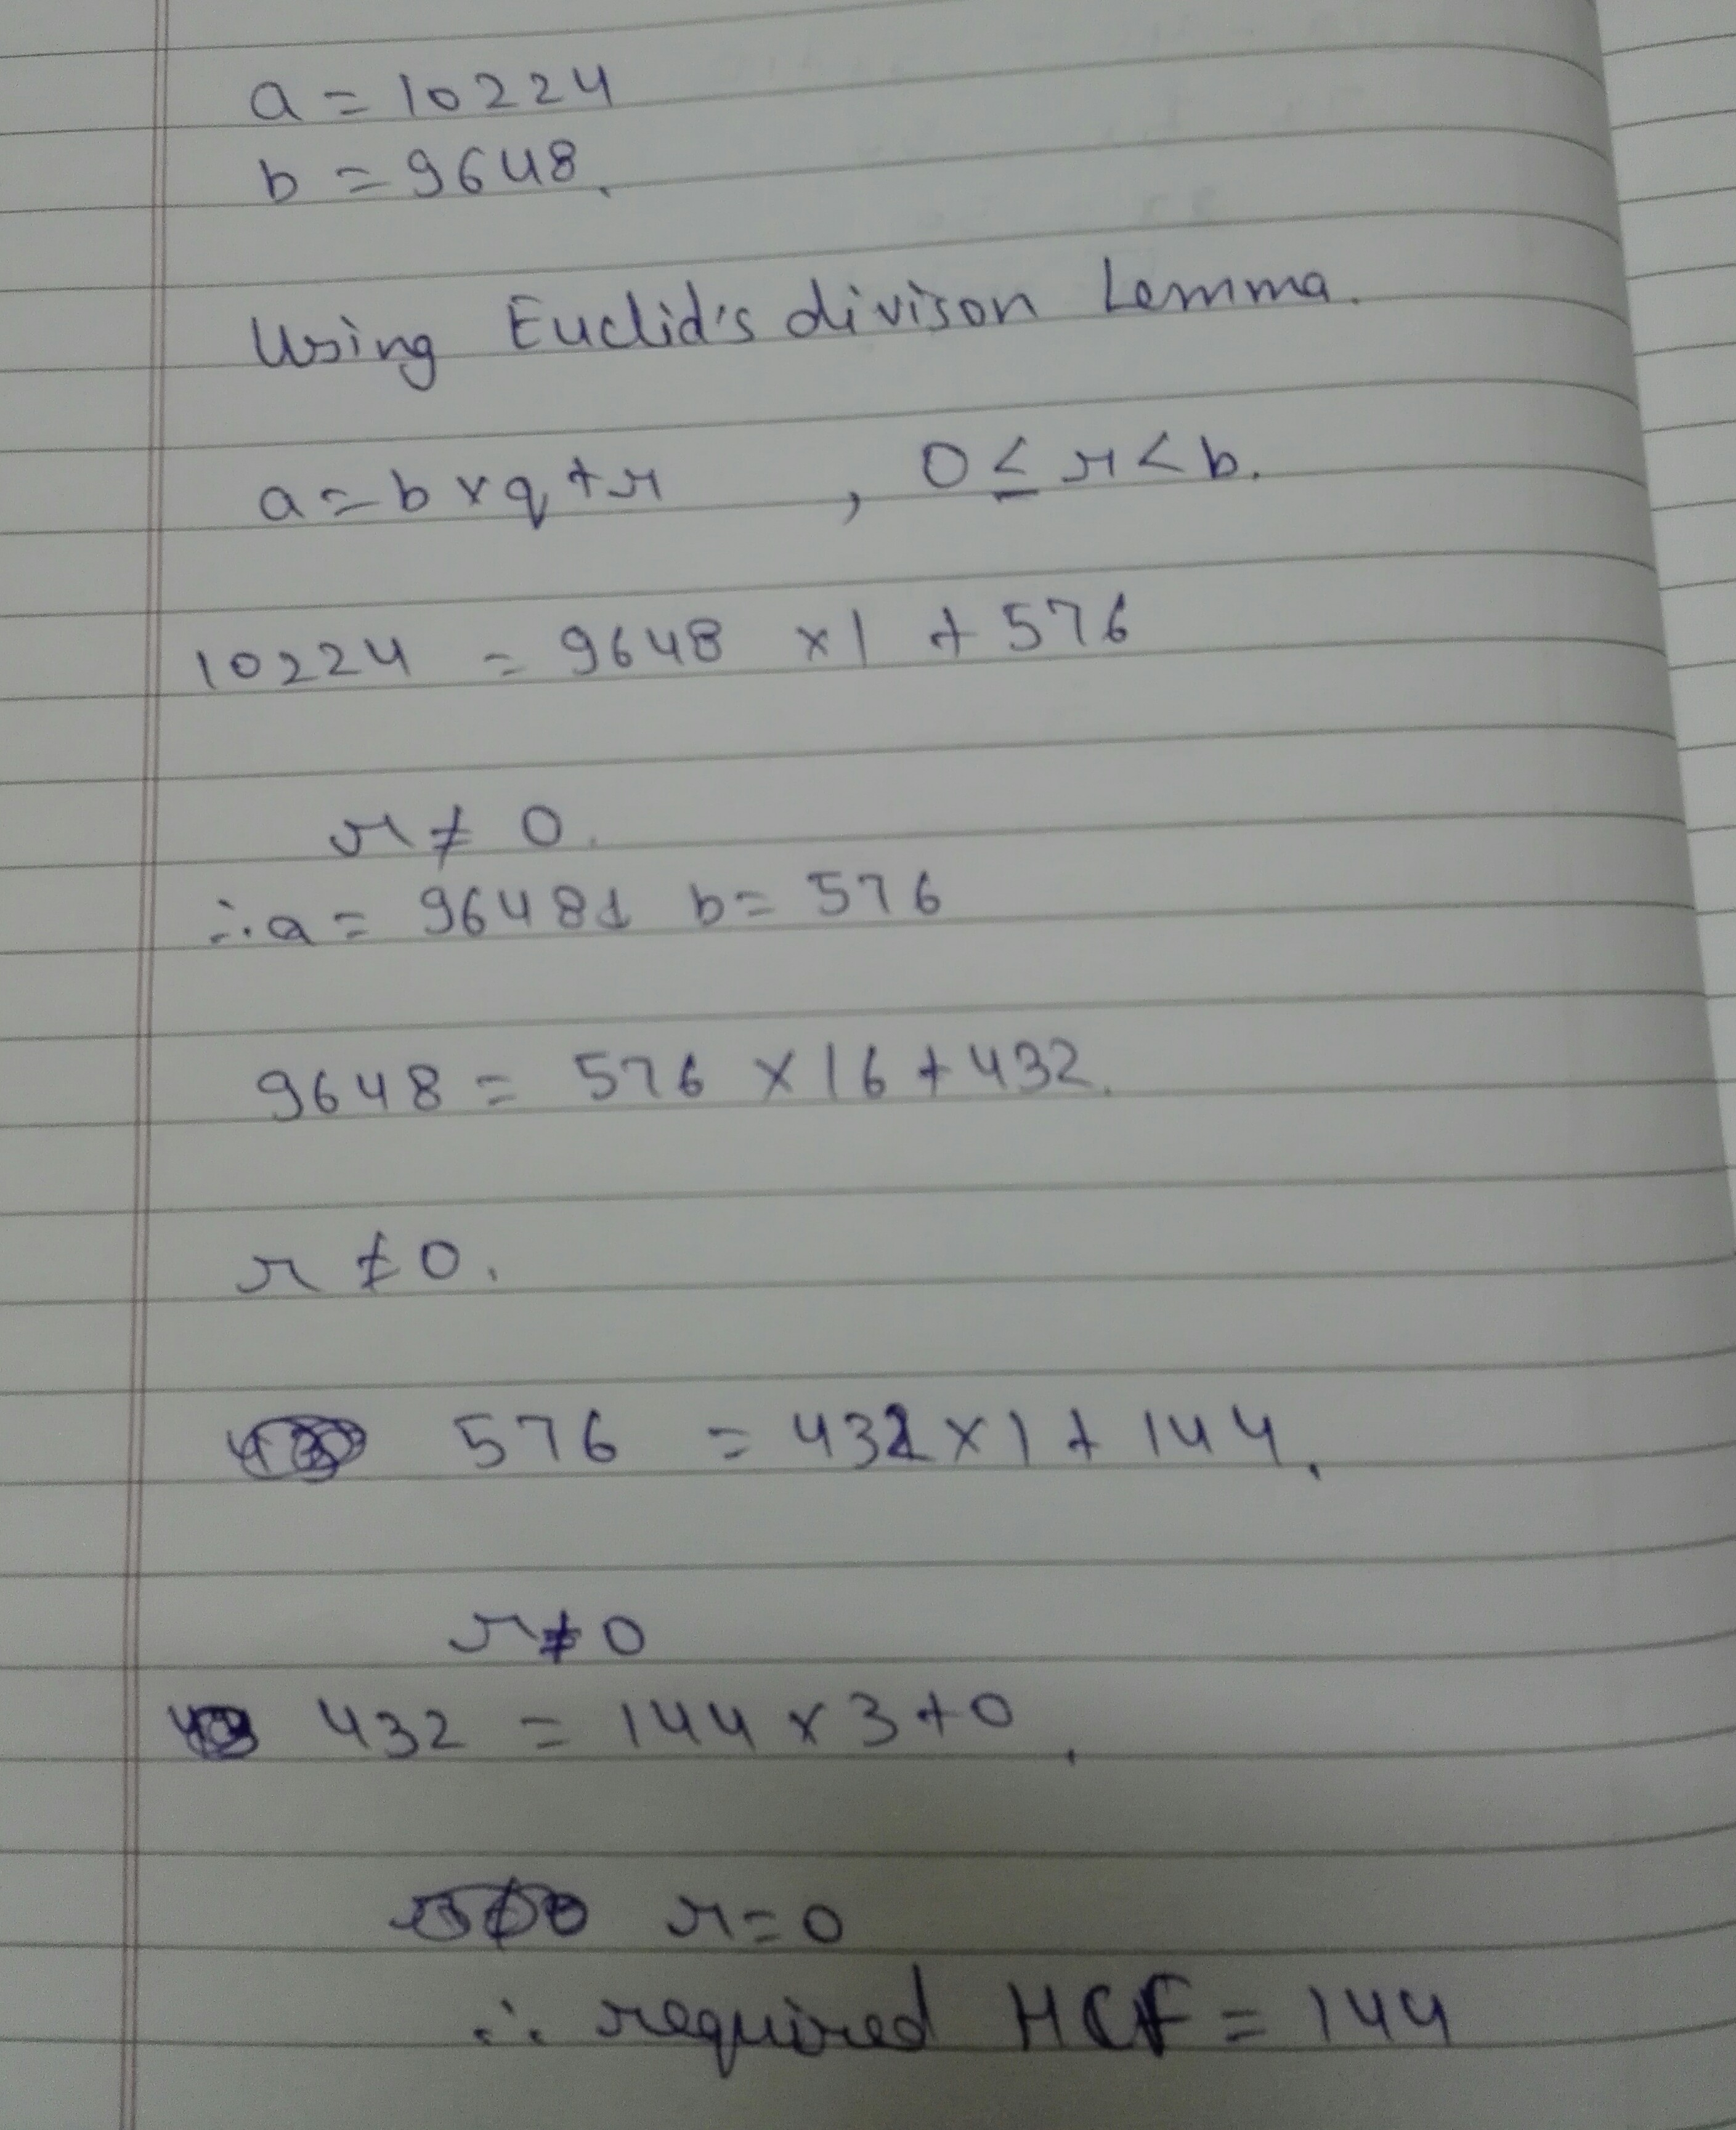 use equally division algorithm to find the HCF of 10224 and 9648